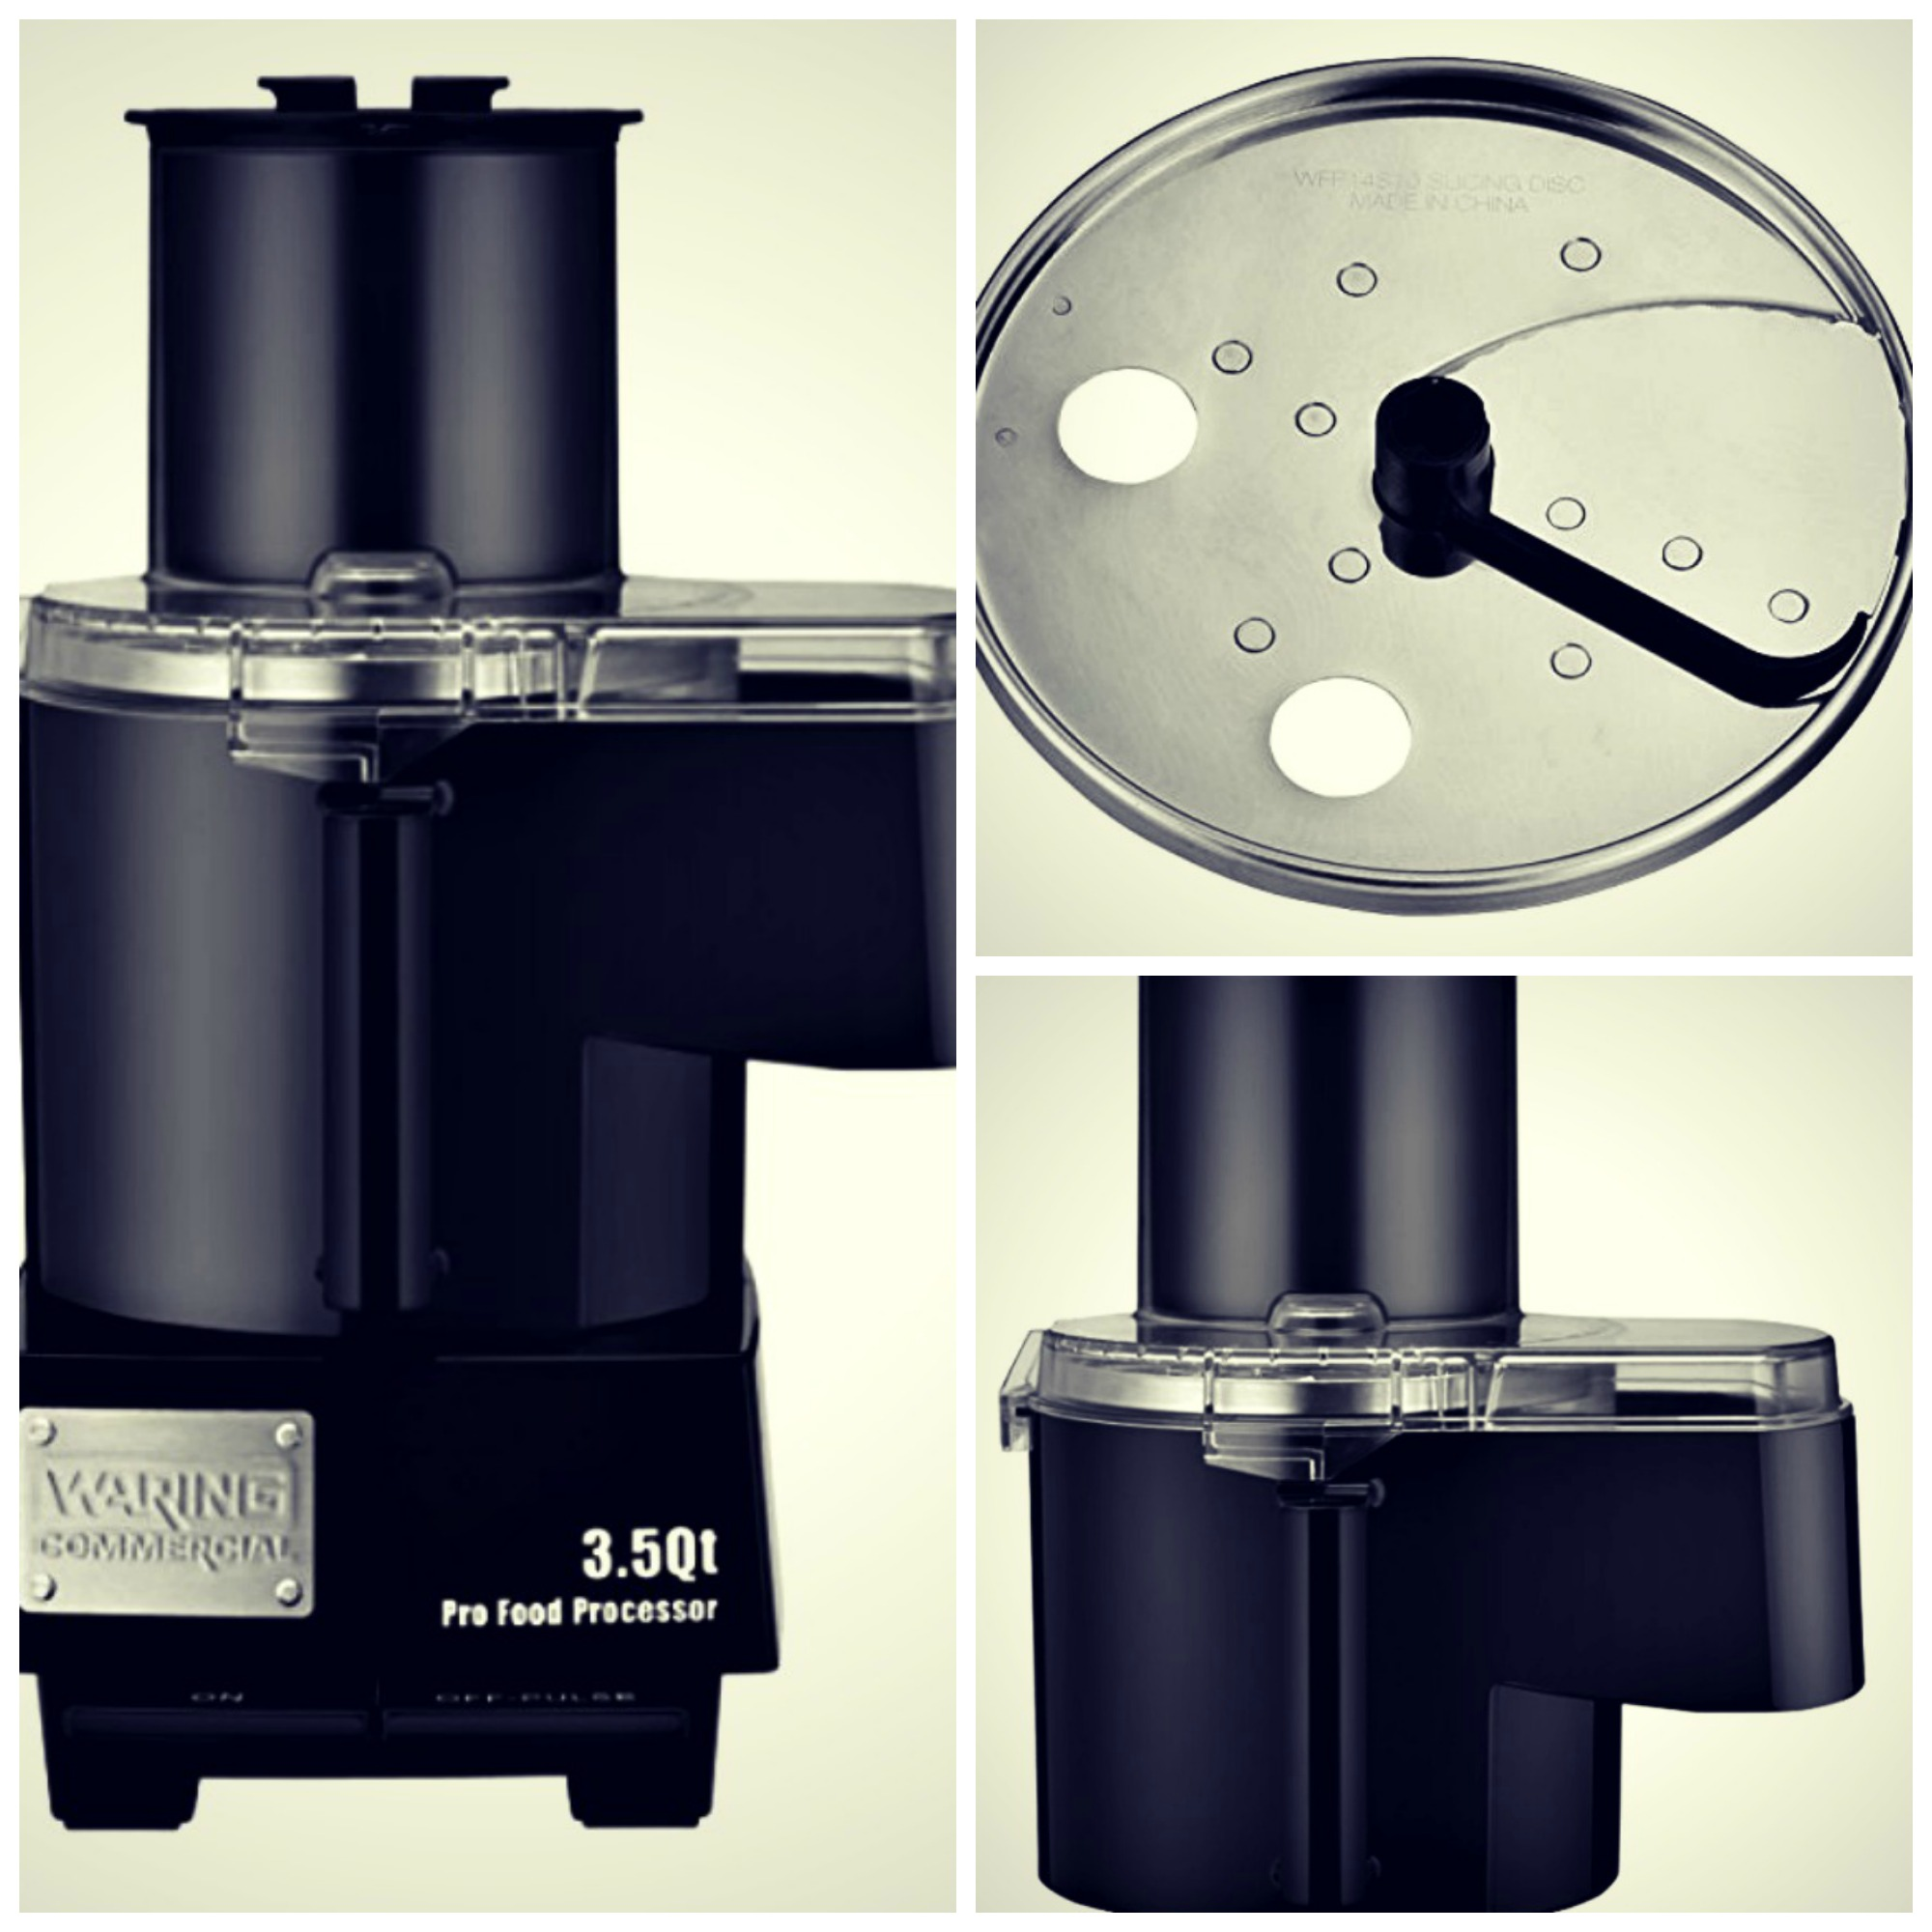 Waring Food Processor Is a Premium Gift for Excellent Chefs